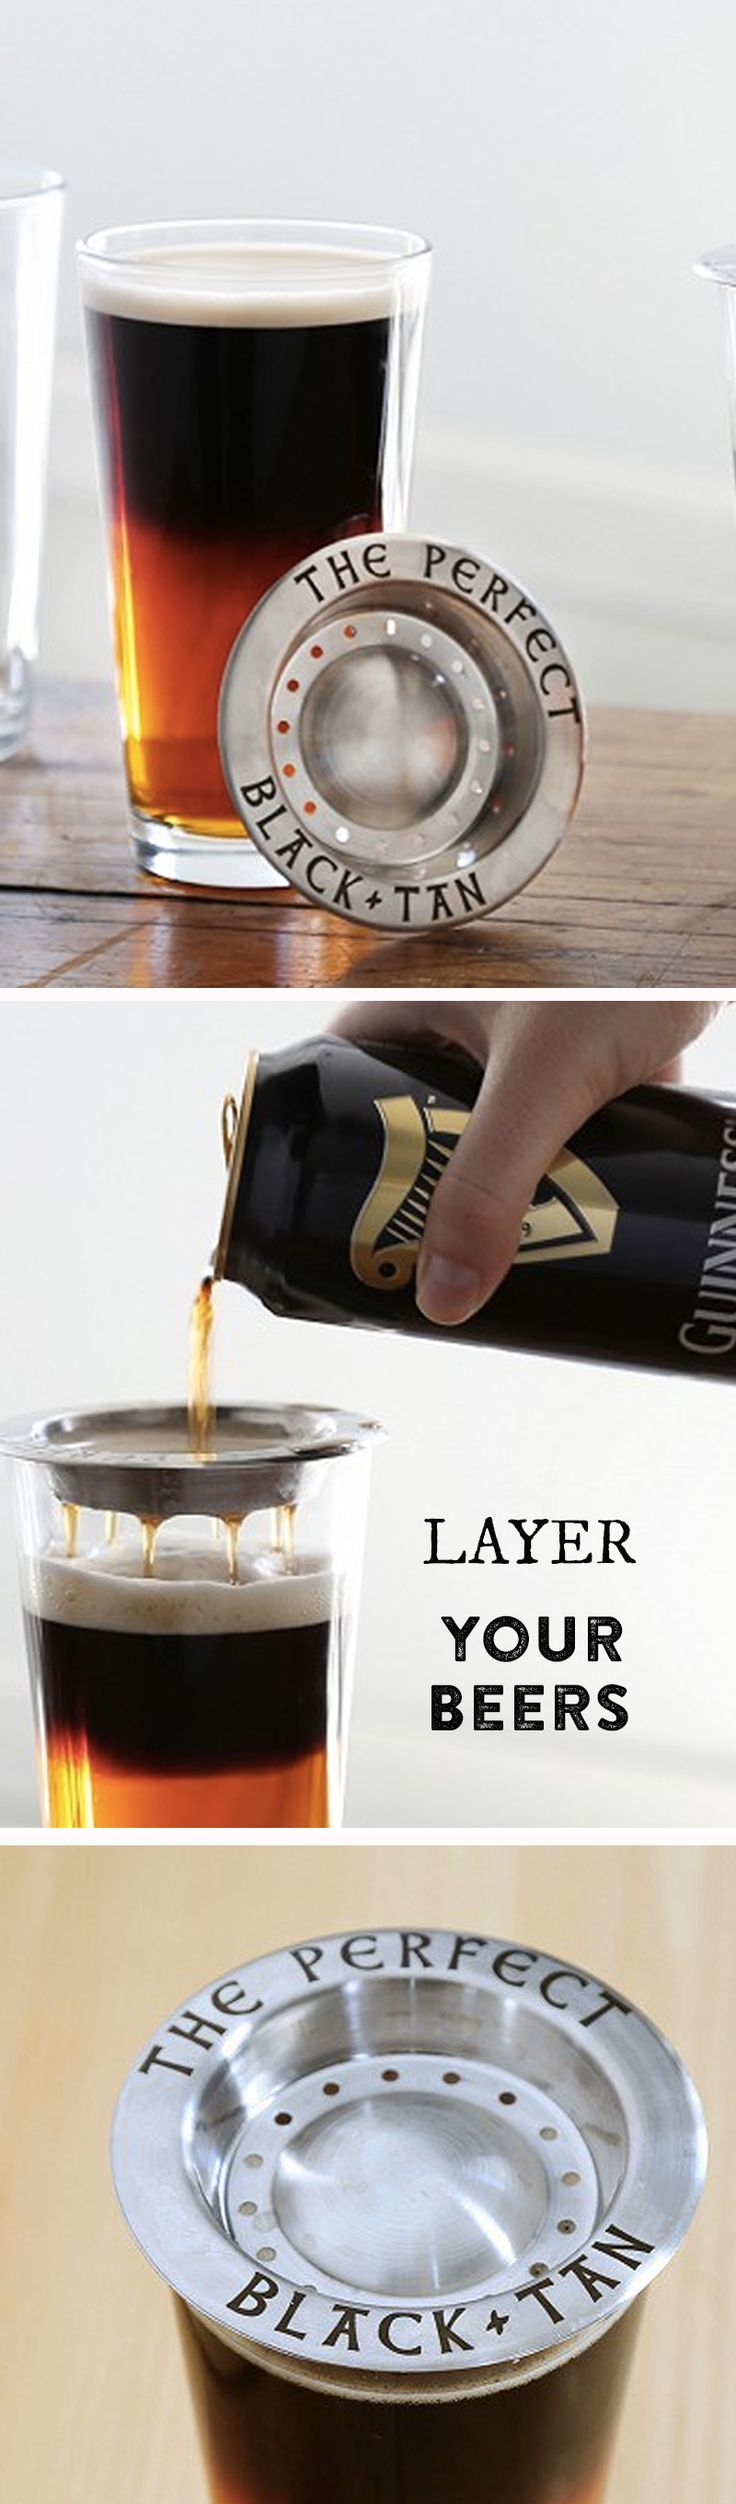 Layer multiple beers in one glass for more complex flavors and a striking visual effect. With this tool, all you need to do is pour.